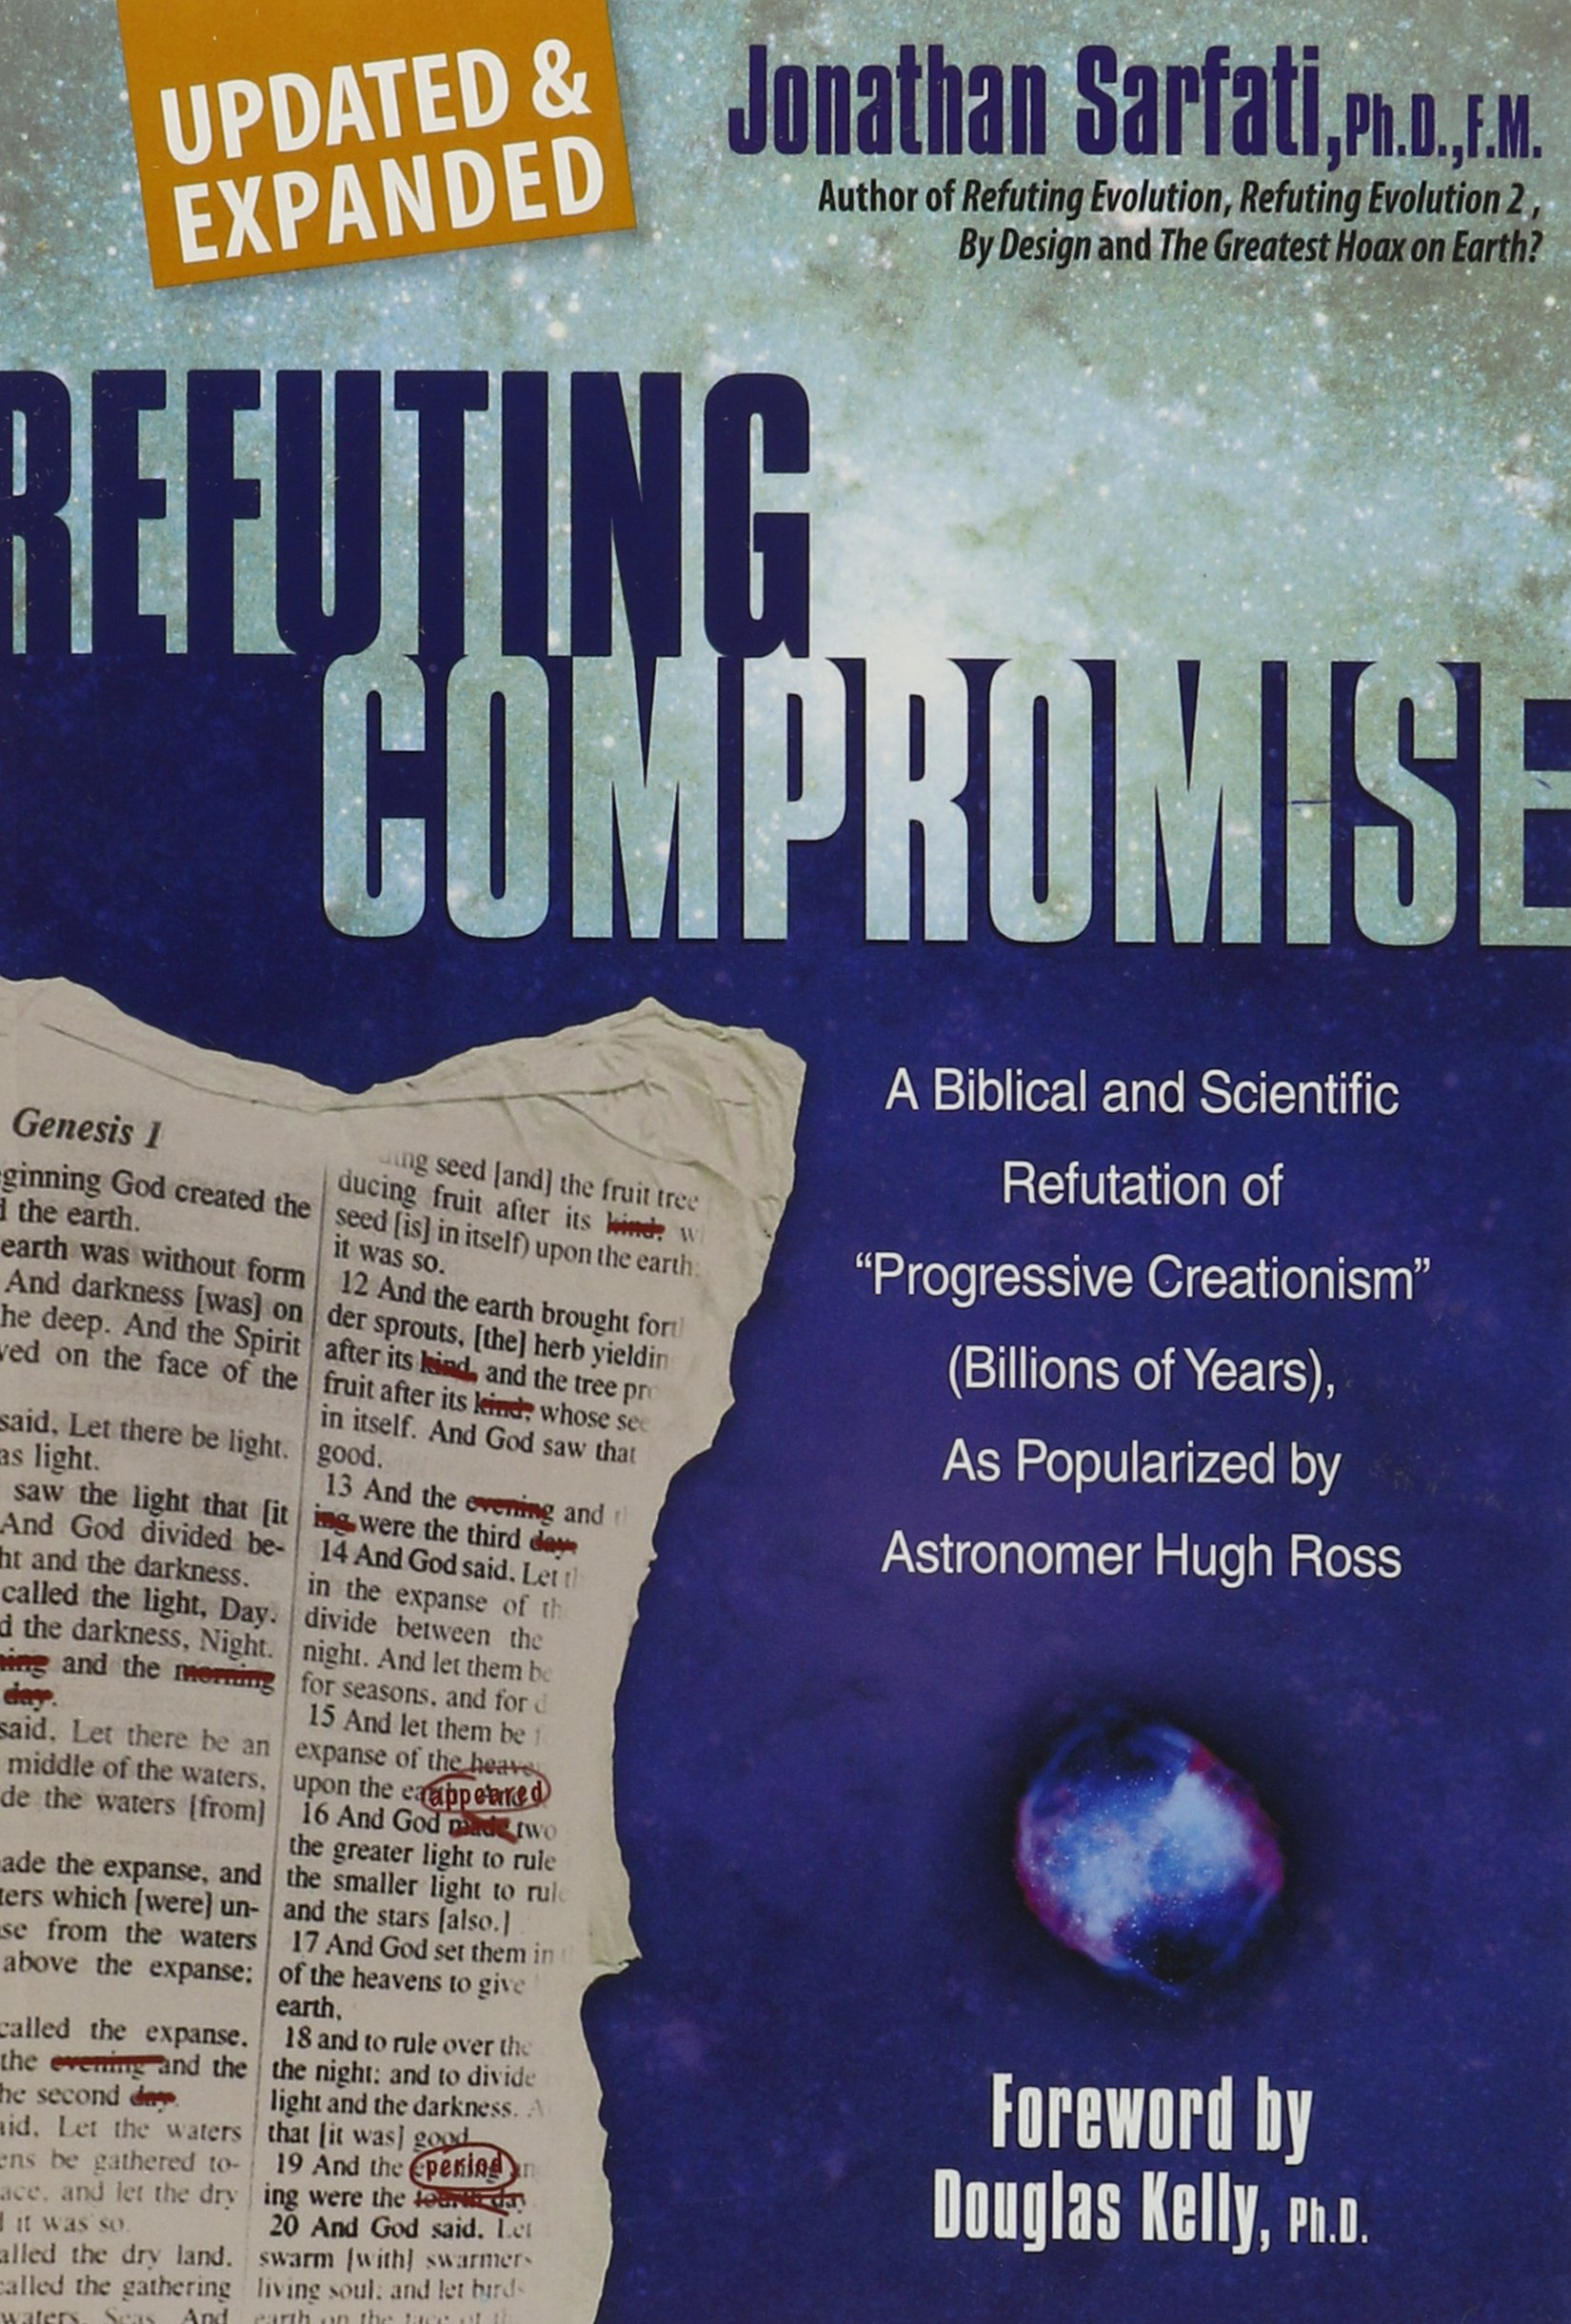 """Refuting Compromise: A Biblical and Scientific Refutation of """"Progressive Creationism"""" (Billions of Years) As Popularized by Astronomer Hugh Ross pdf epub"""